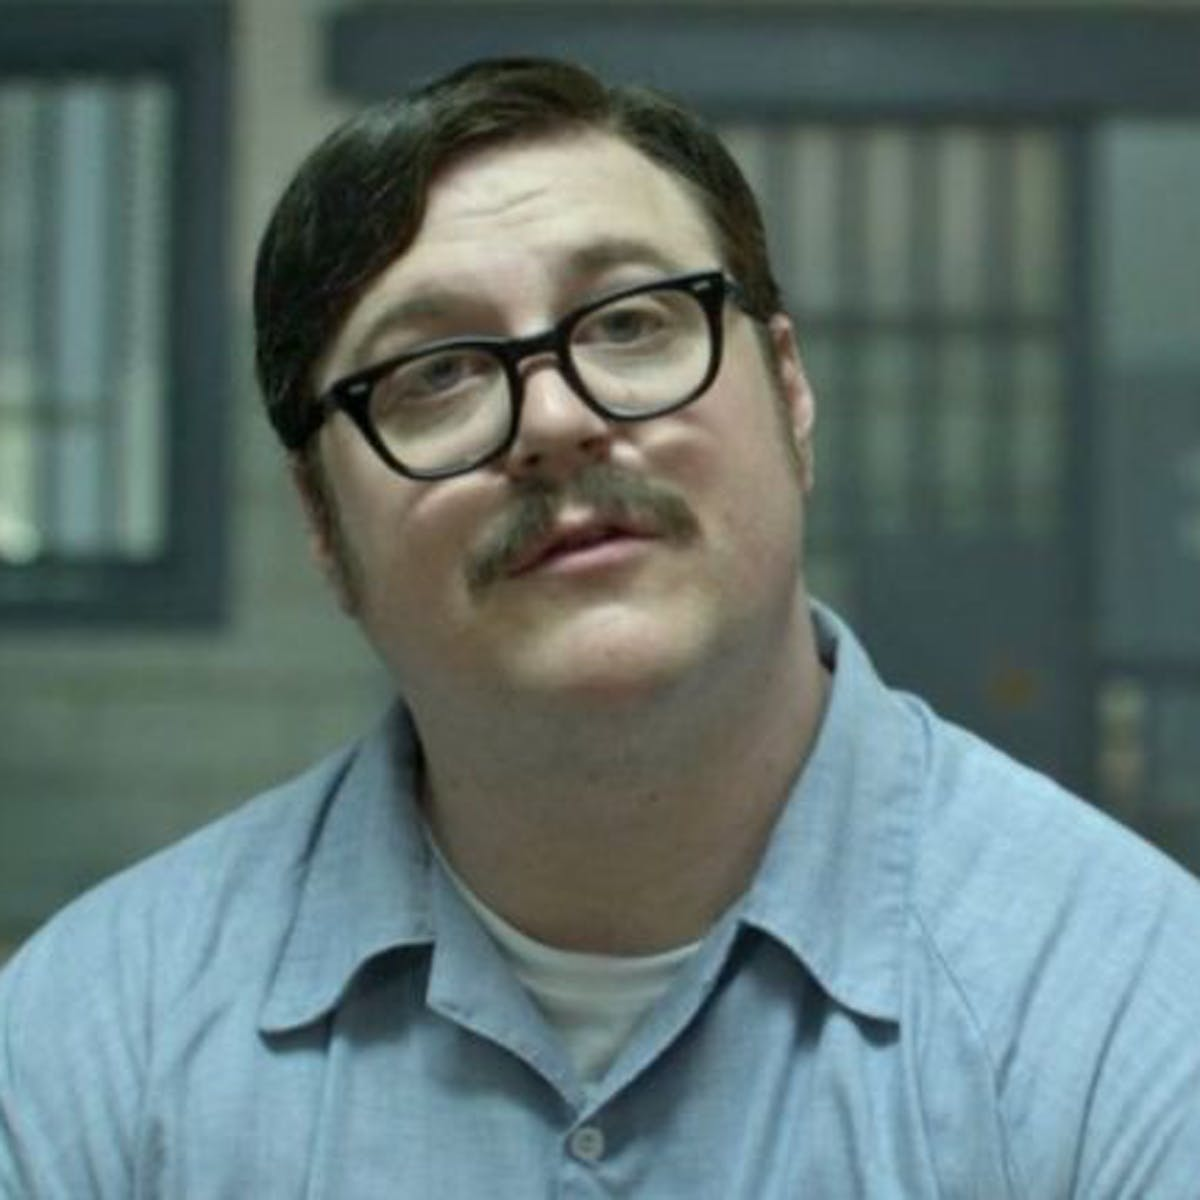 Mindhunter' Season 2 Release Date May Be Announced in a Trailer This